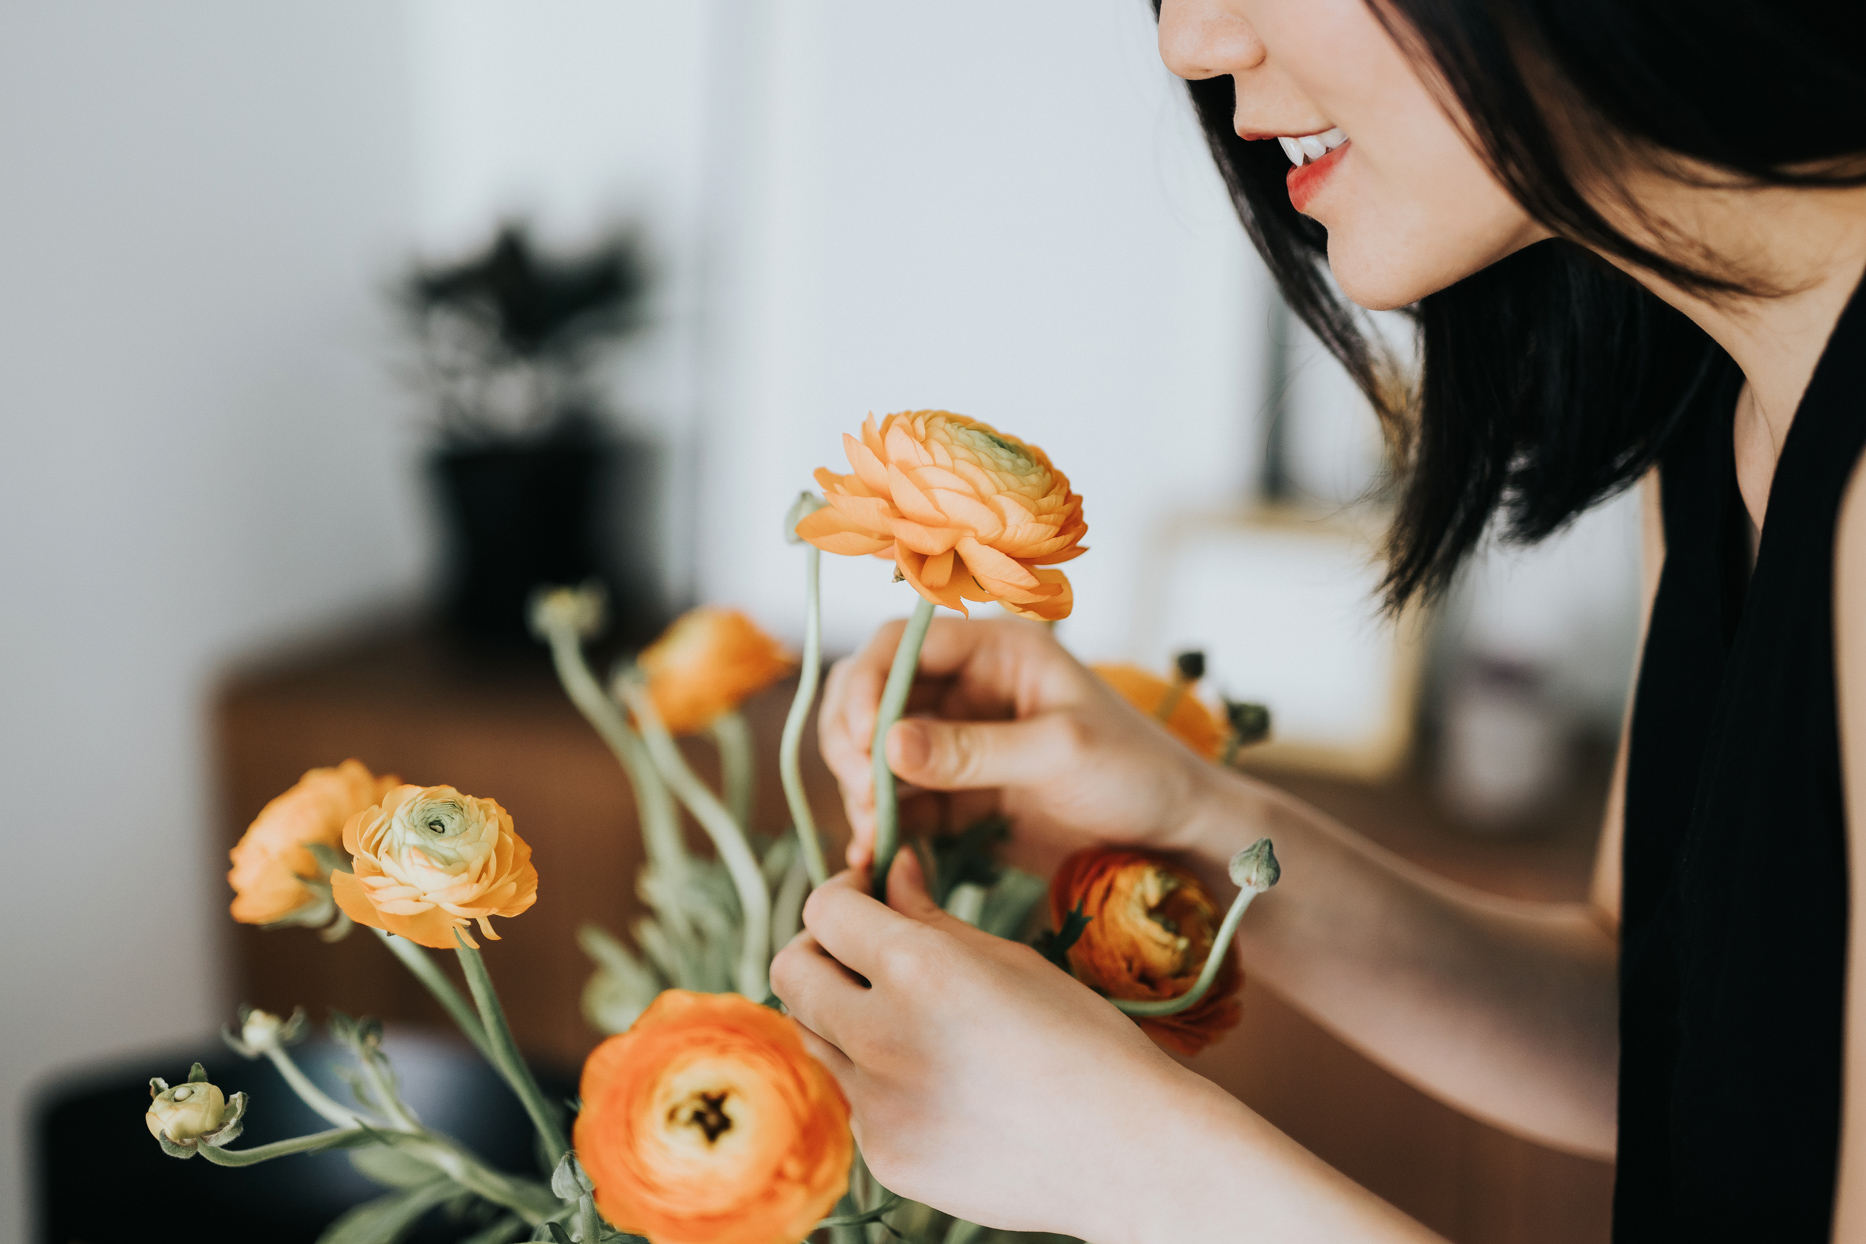 woman arranging orange ranunculus flowers